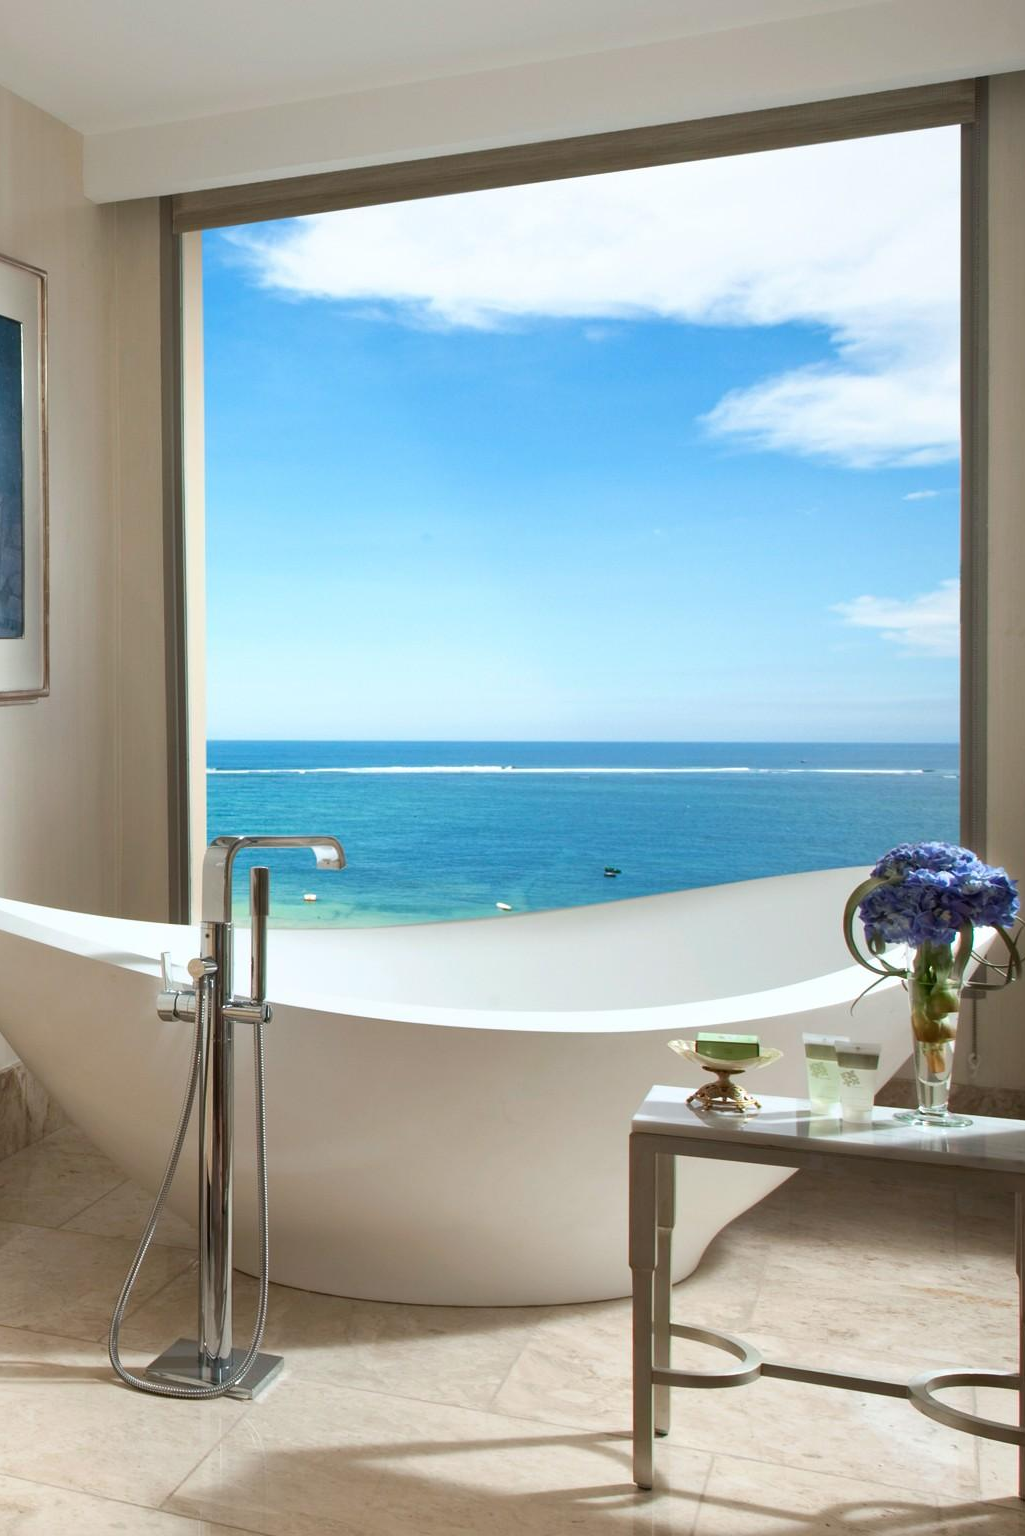 Royal Suite bathrooms come with deep soaking tubs with killer sea ...